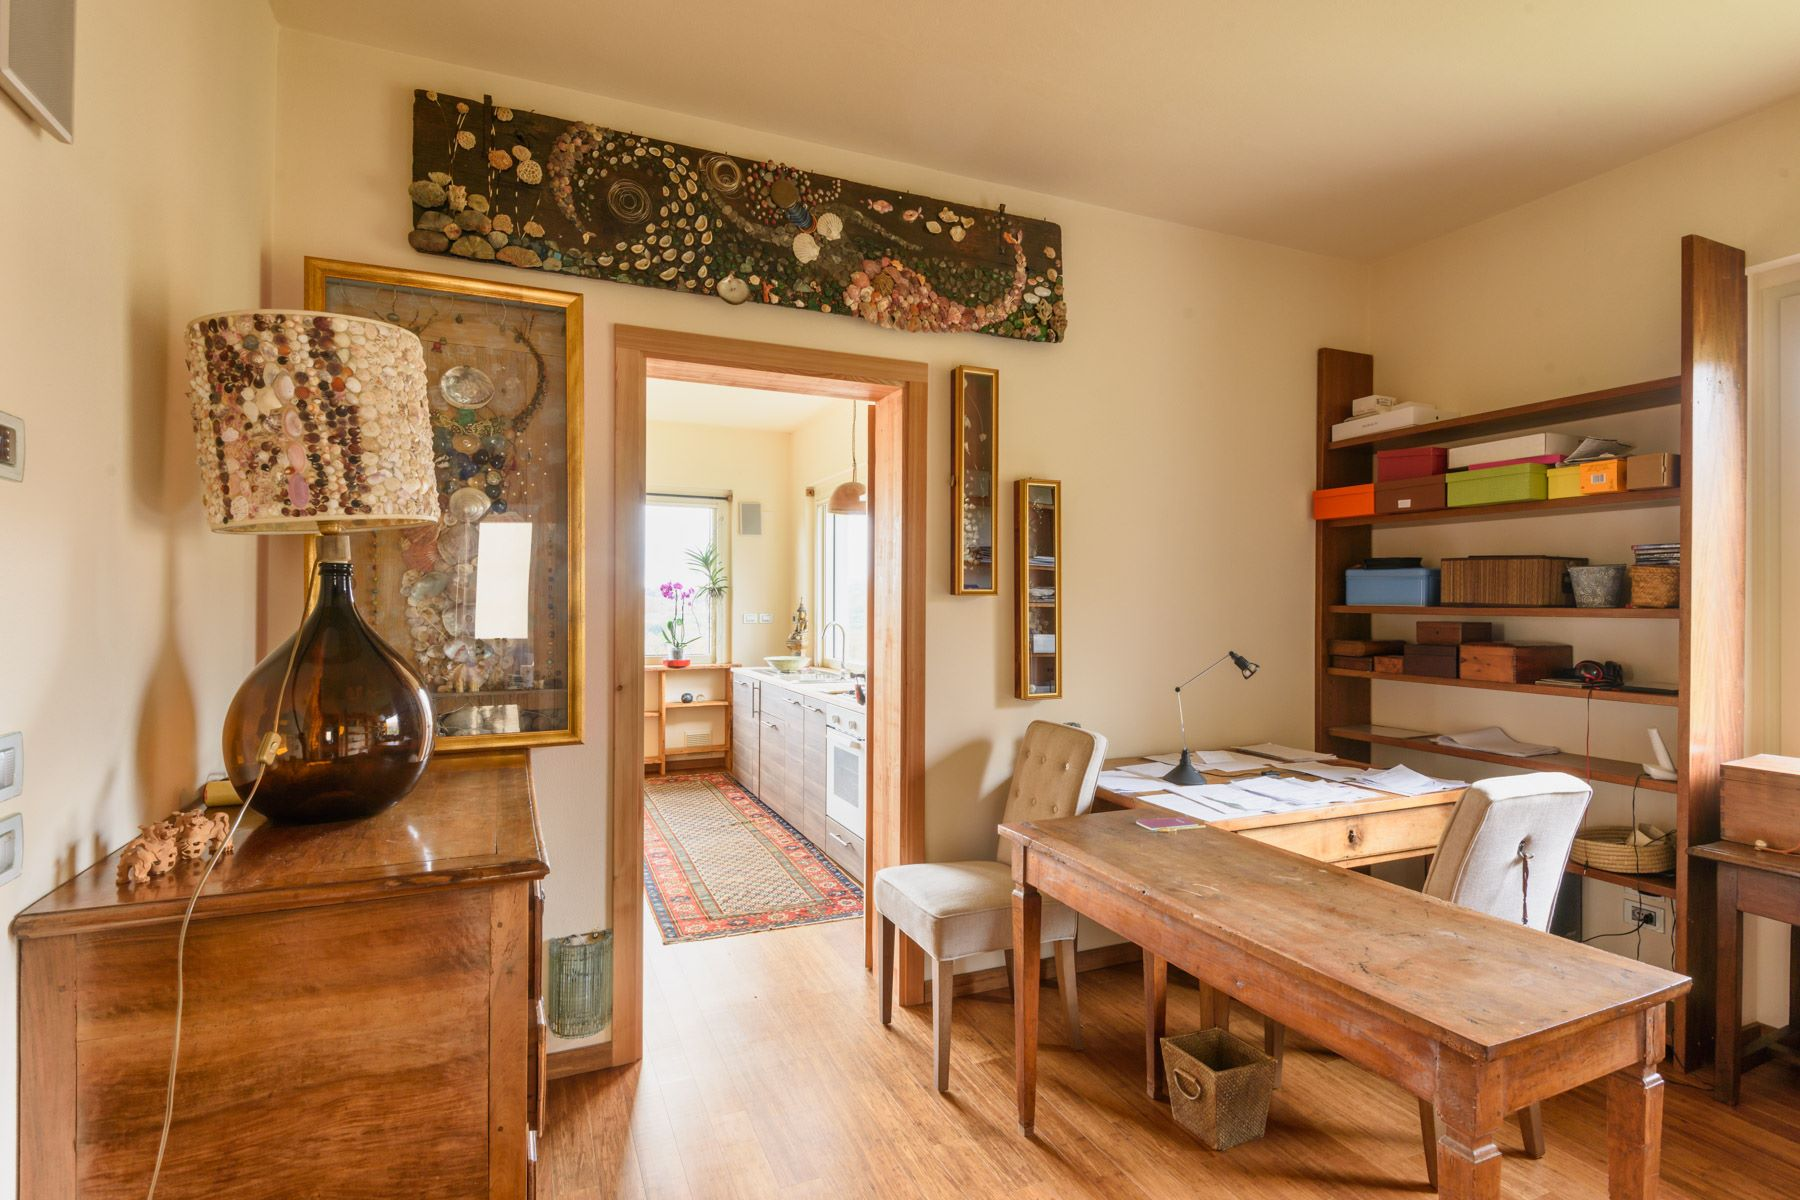 Additional photo for property listing at Marvelous small villa eco-sustainable in the heart of Tuscan countryside Via Venezia Other Arezzo, Arezzo 52026 Italy